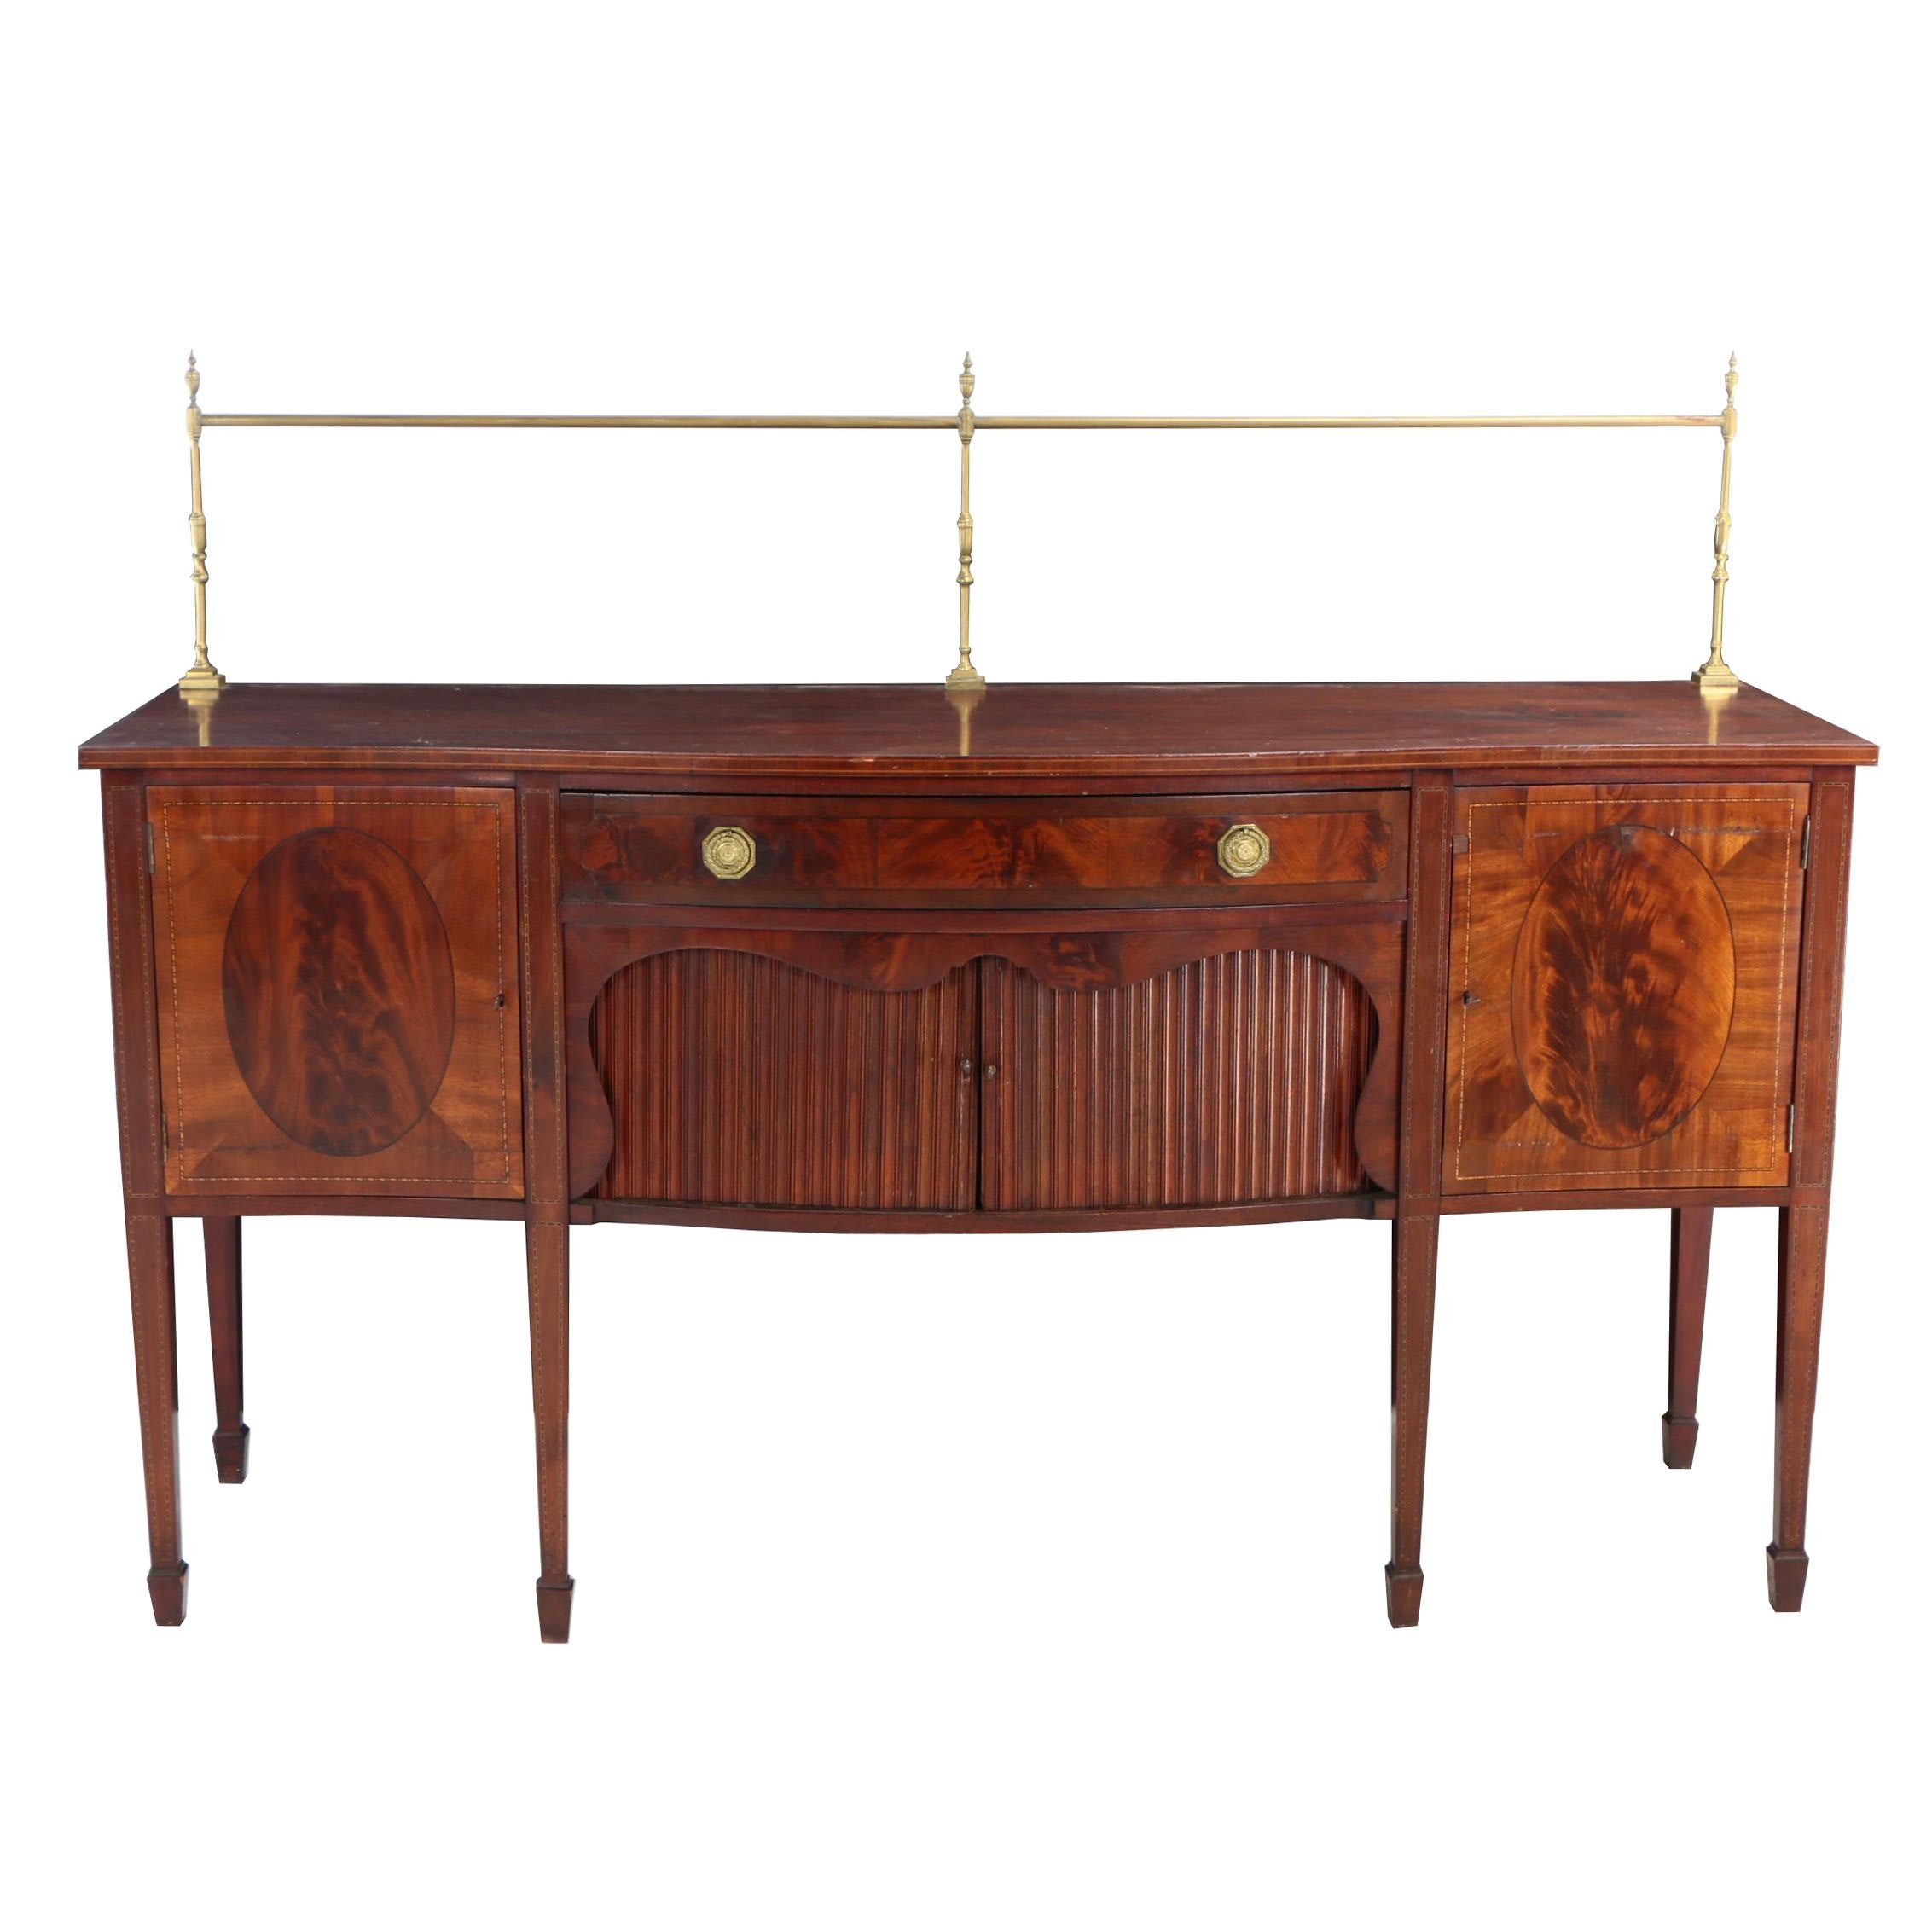 George III Style Brass-Mounted and String-Inlaid Mahogany Sideboard